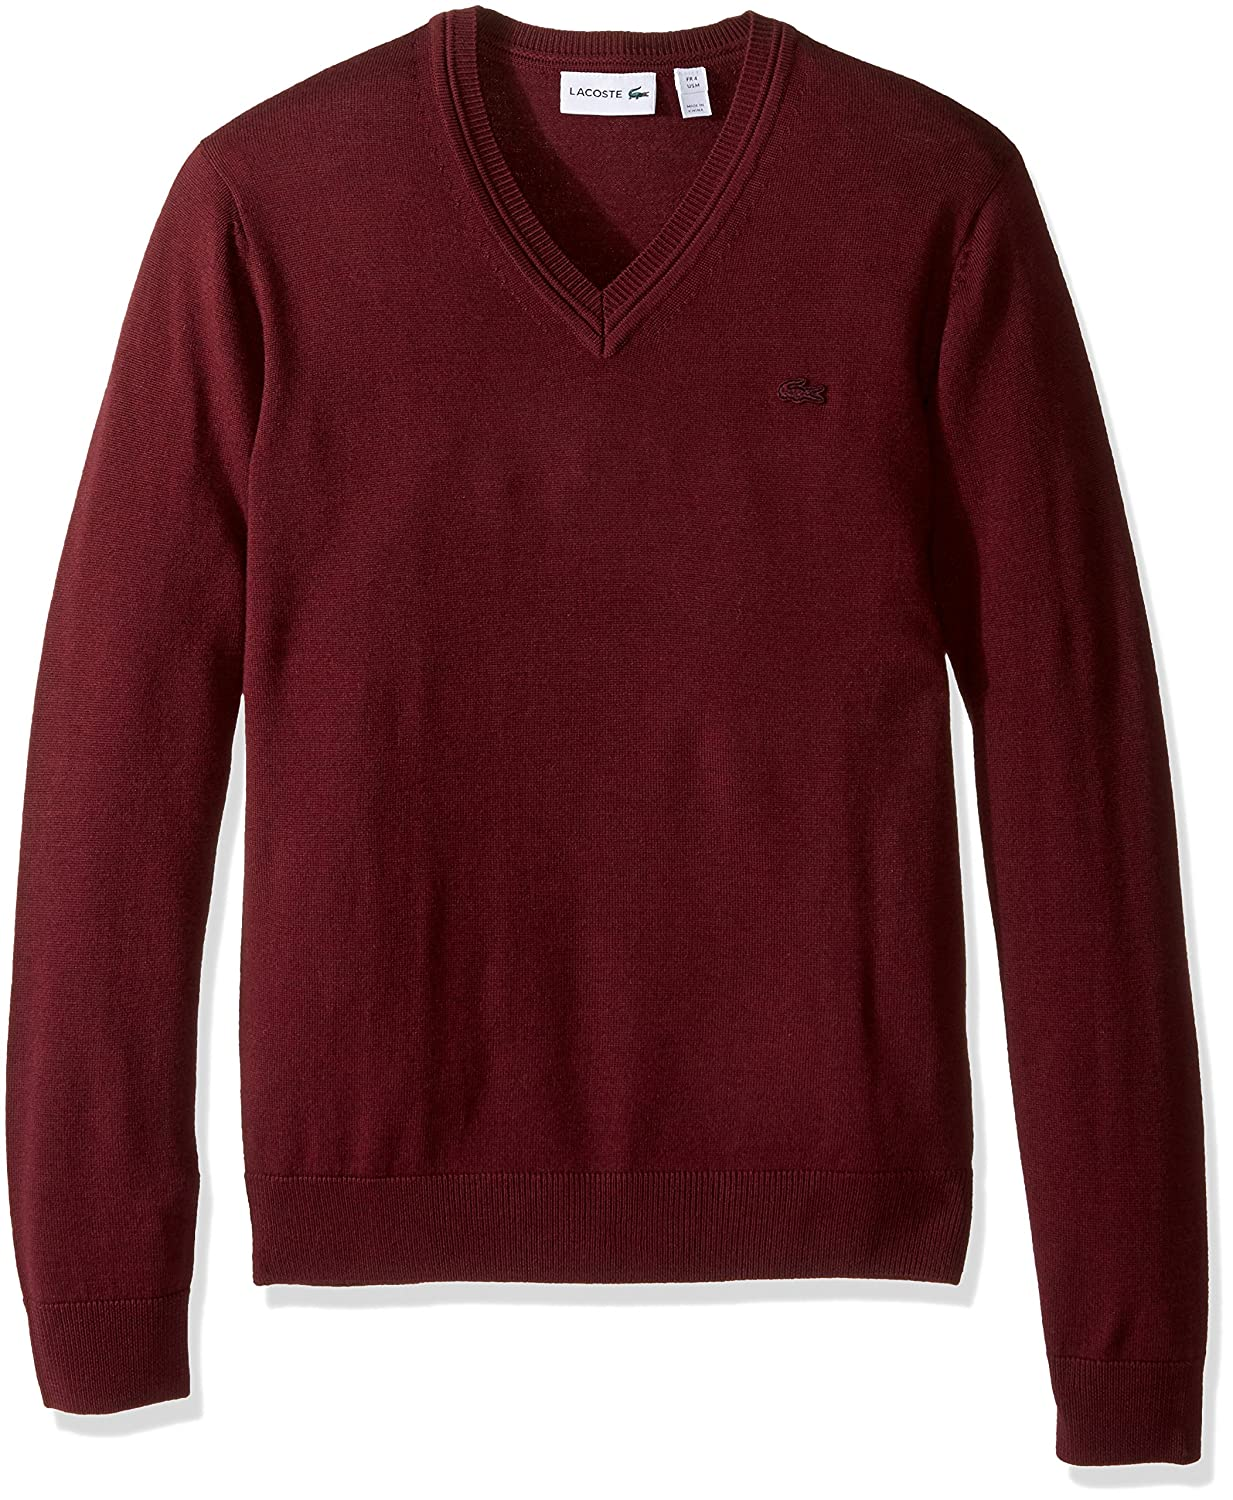 Lacoste Men's 100% Lambswool V Neck Sweater with Tonal Croc at ...